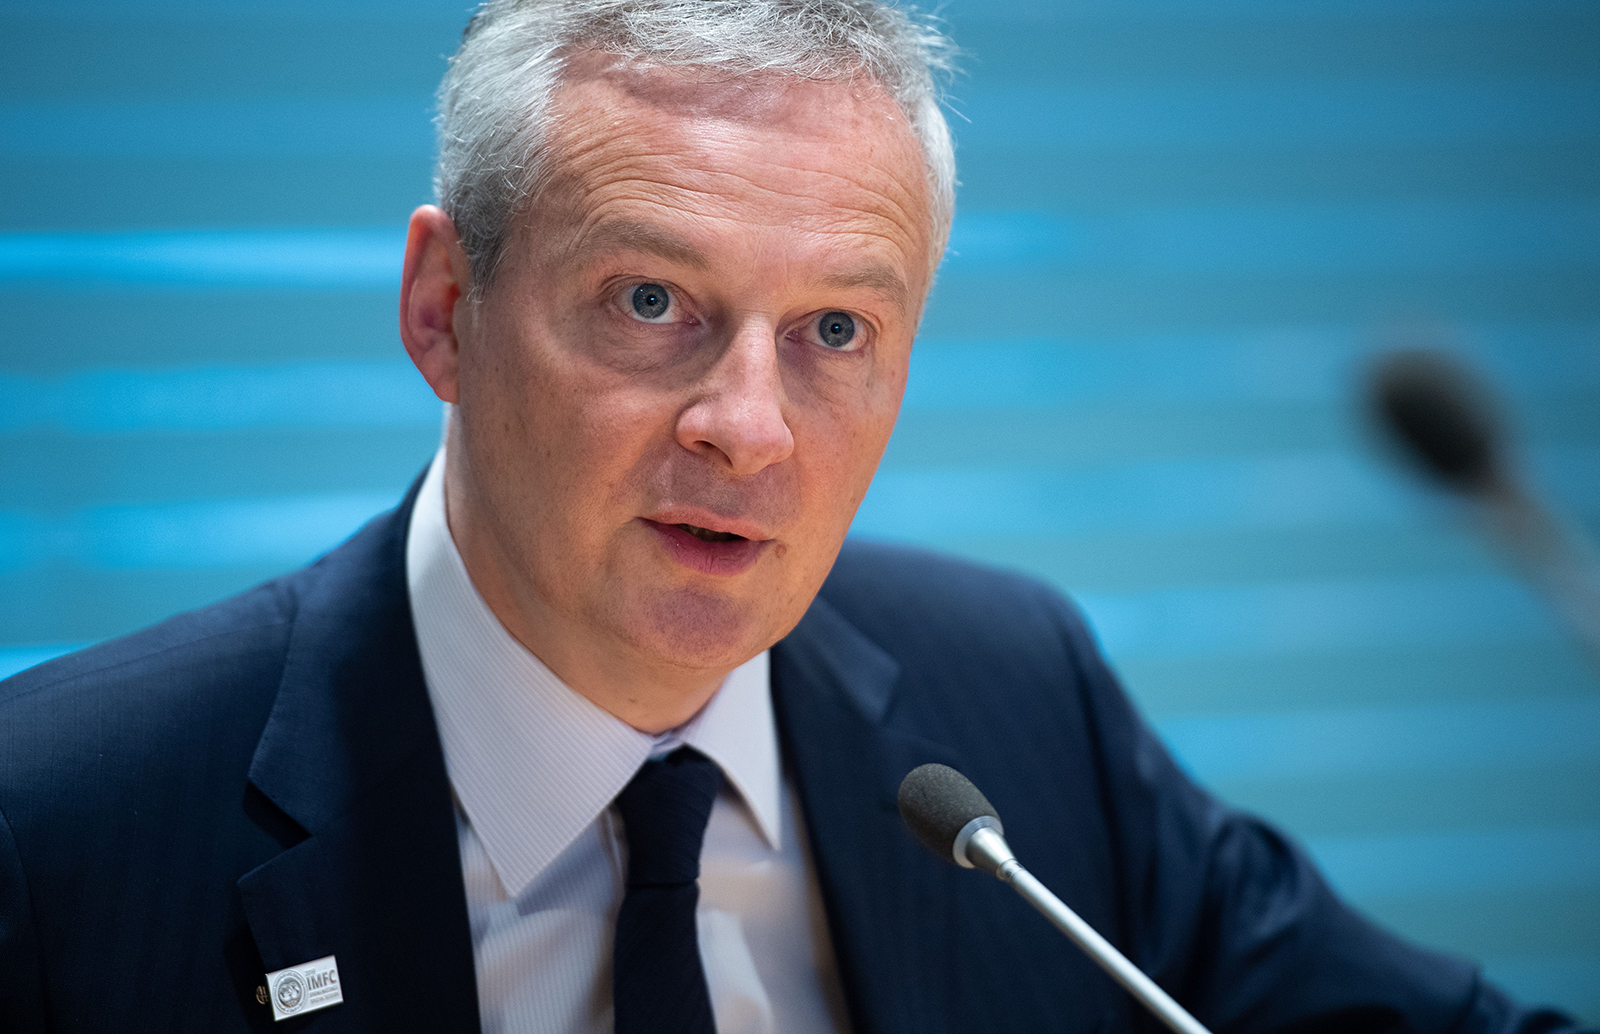 French Finance Minister Bruno LeMaire holds a press conference during the IMF - World Bank Spring Meetings at International Monetary Fund Headquarters in Washington, on April 12, 2019.